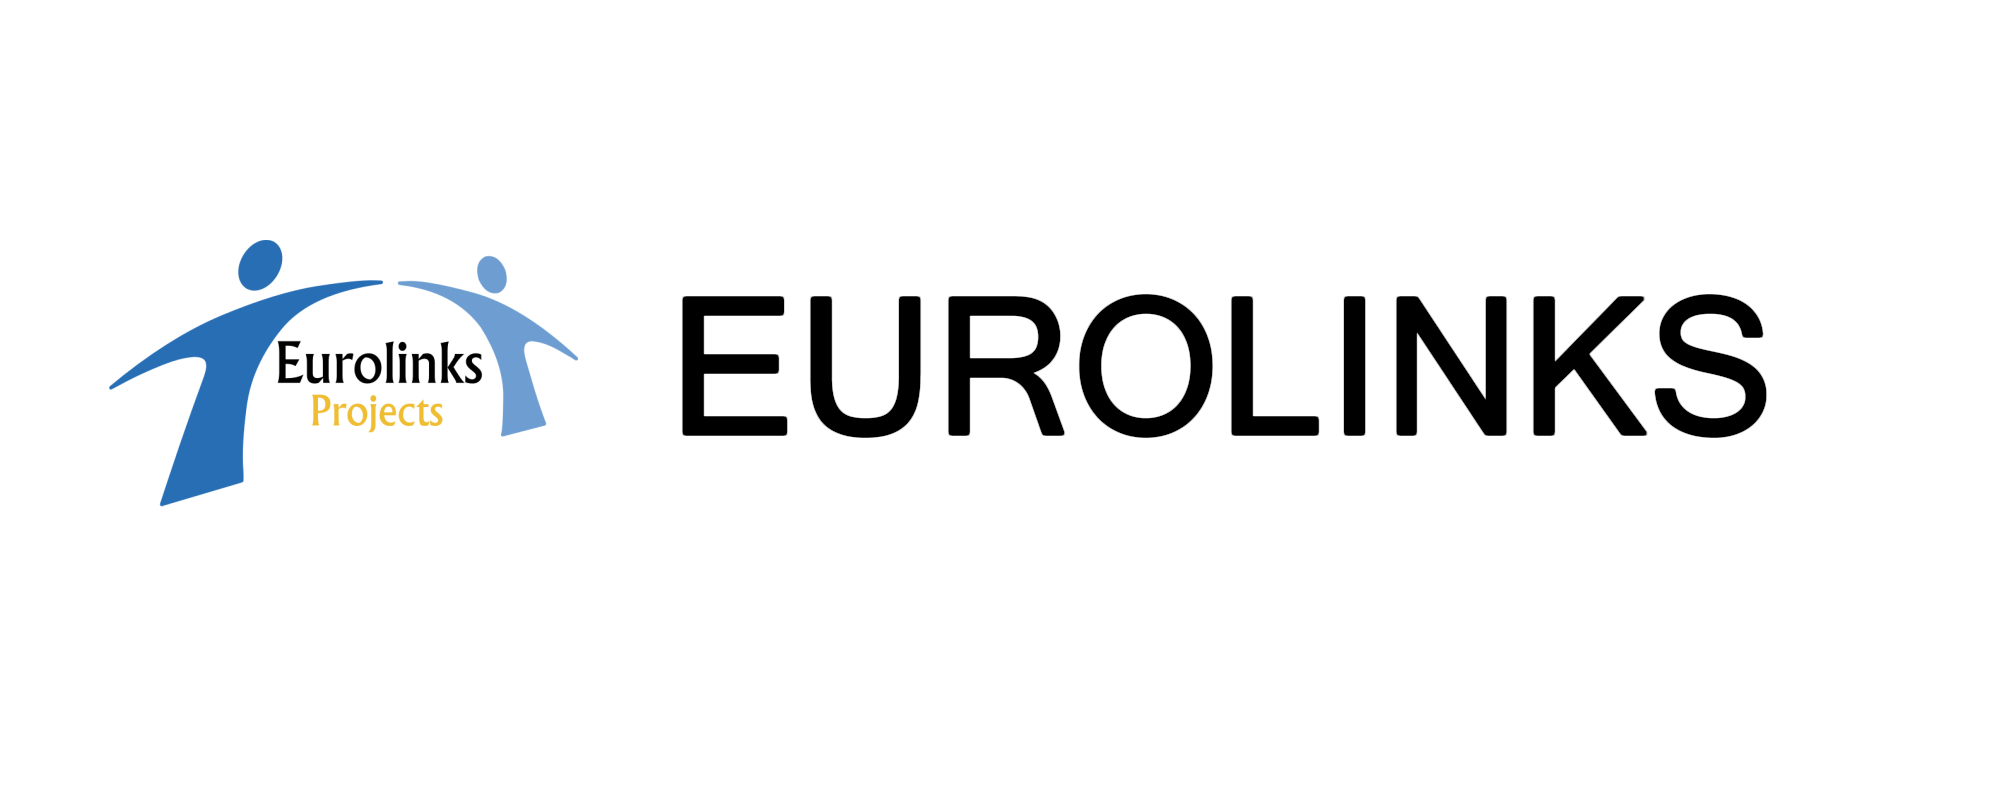 eurolinks projects